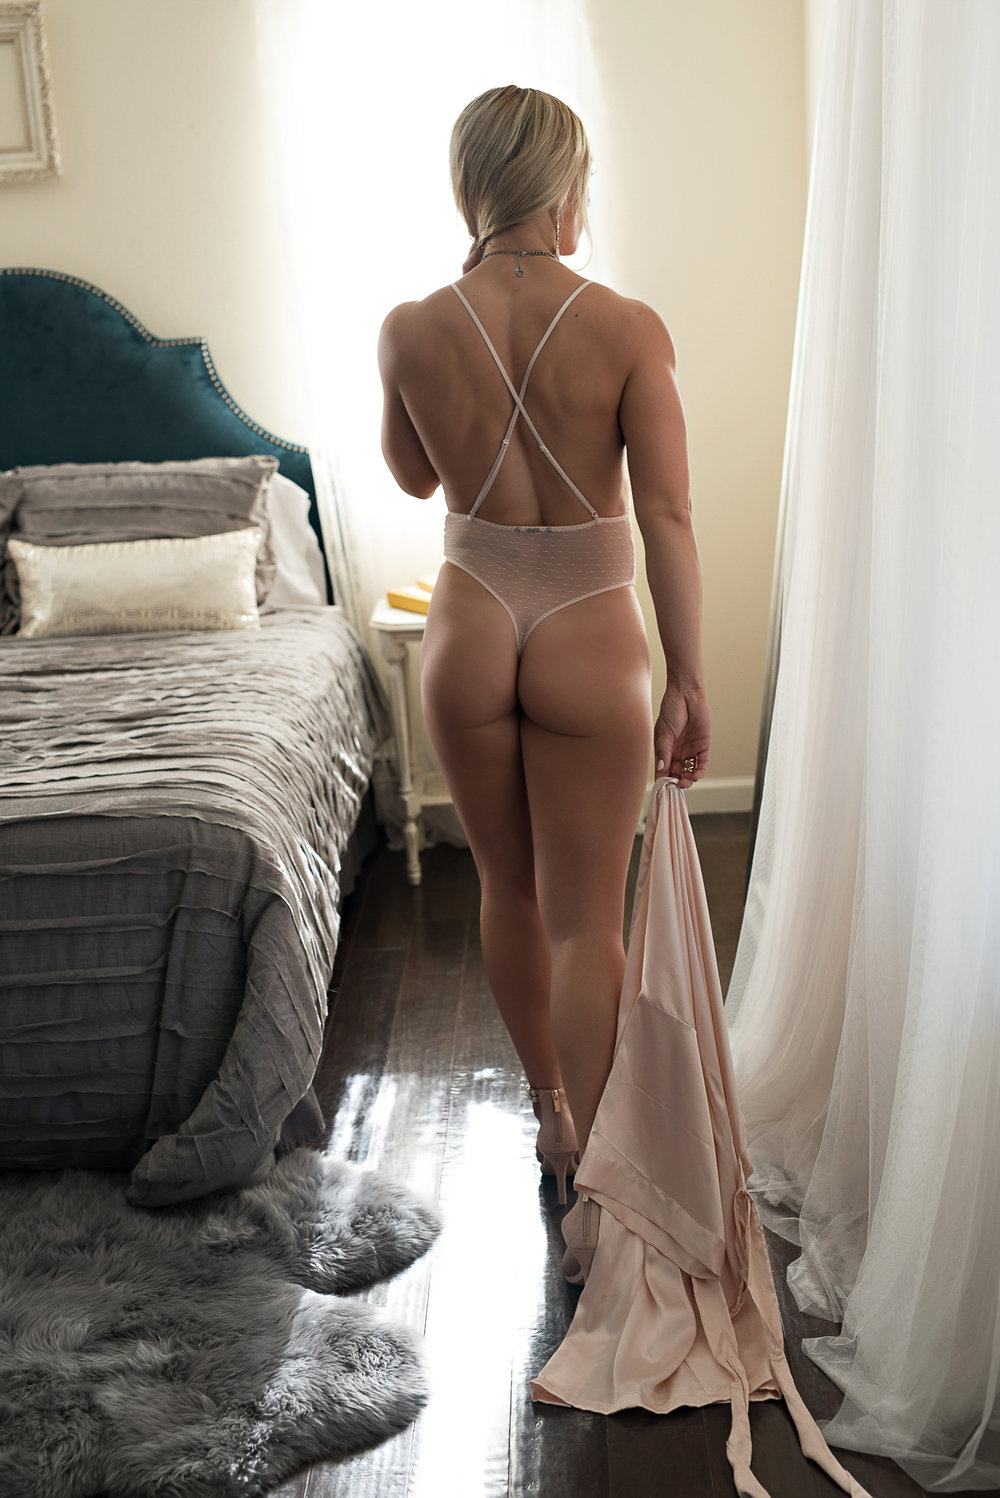 Fit woman wearing nude lingerie Denver boudoir photoshoot